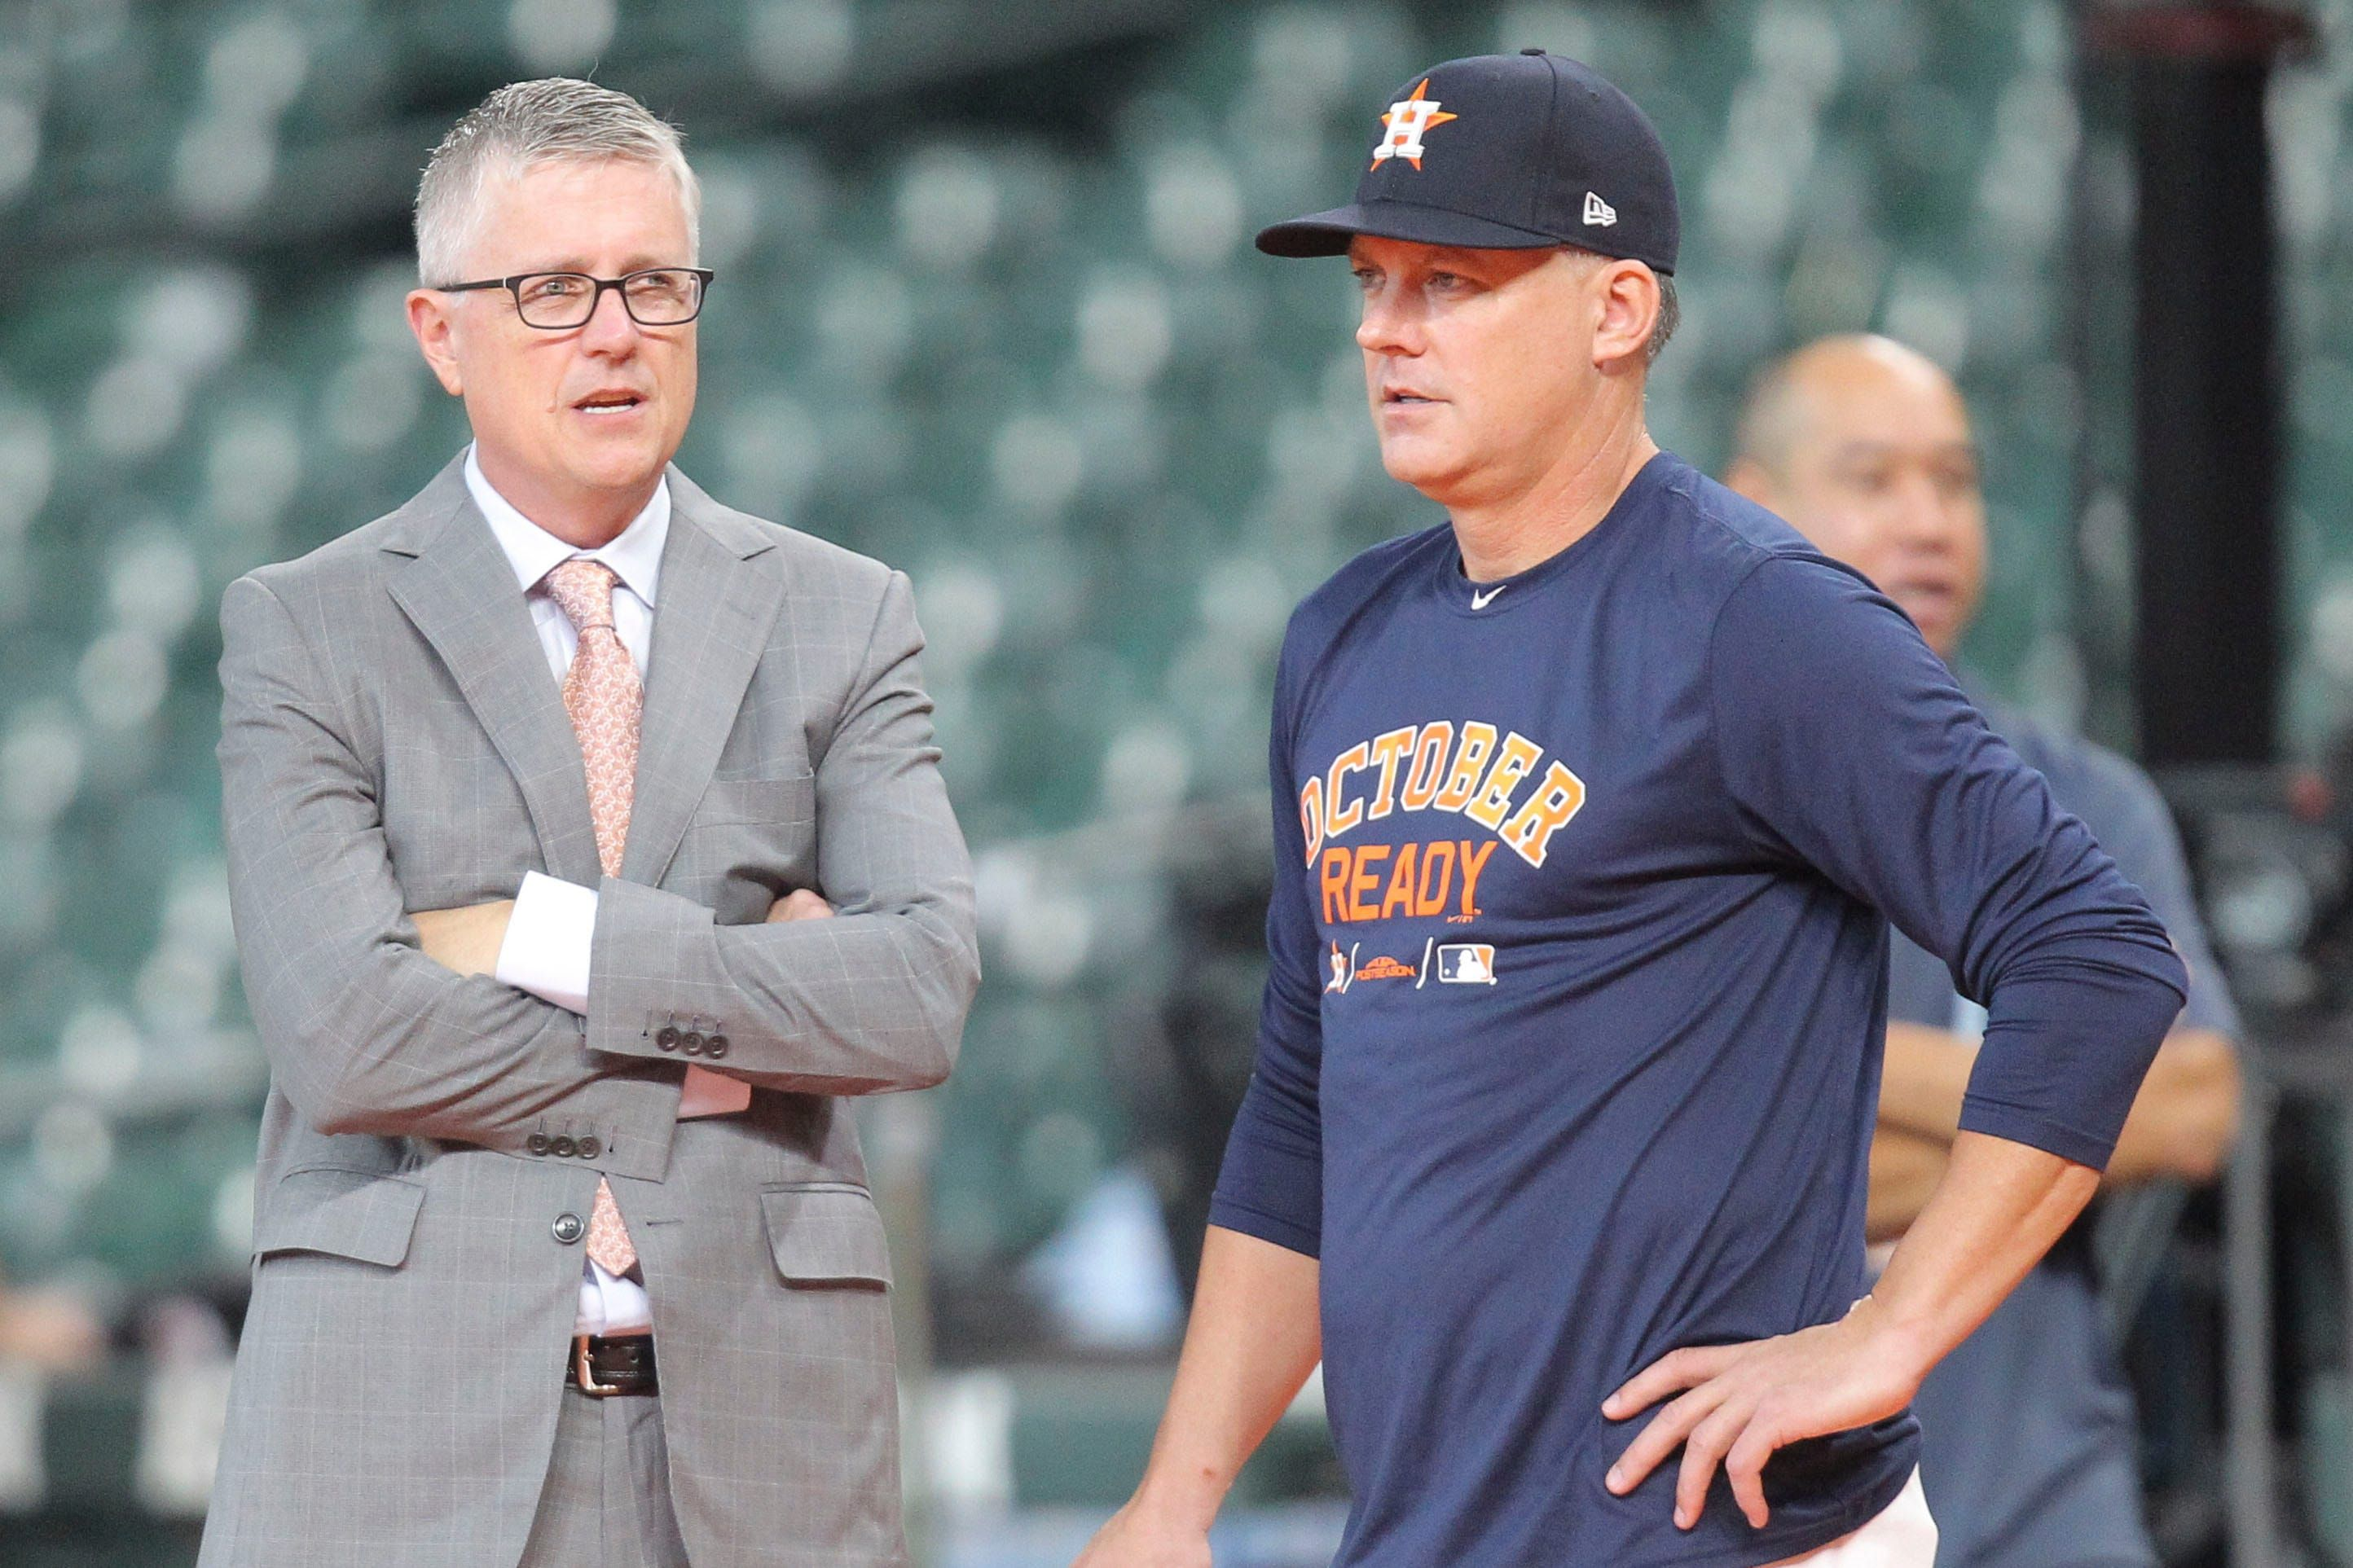 Opinion Former Houston Astros Execs Sold Out Baseball Should Never Be Near Game Again In 2020 Mlb Astros Yankees Team